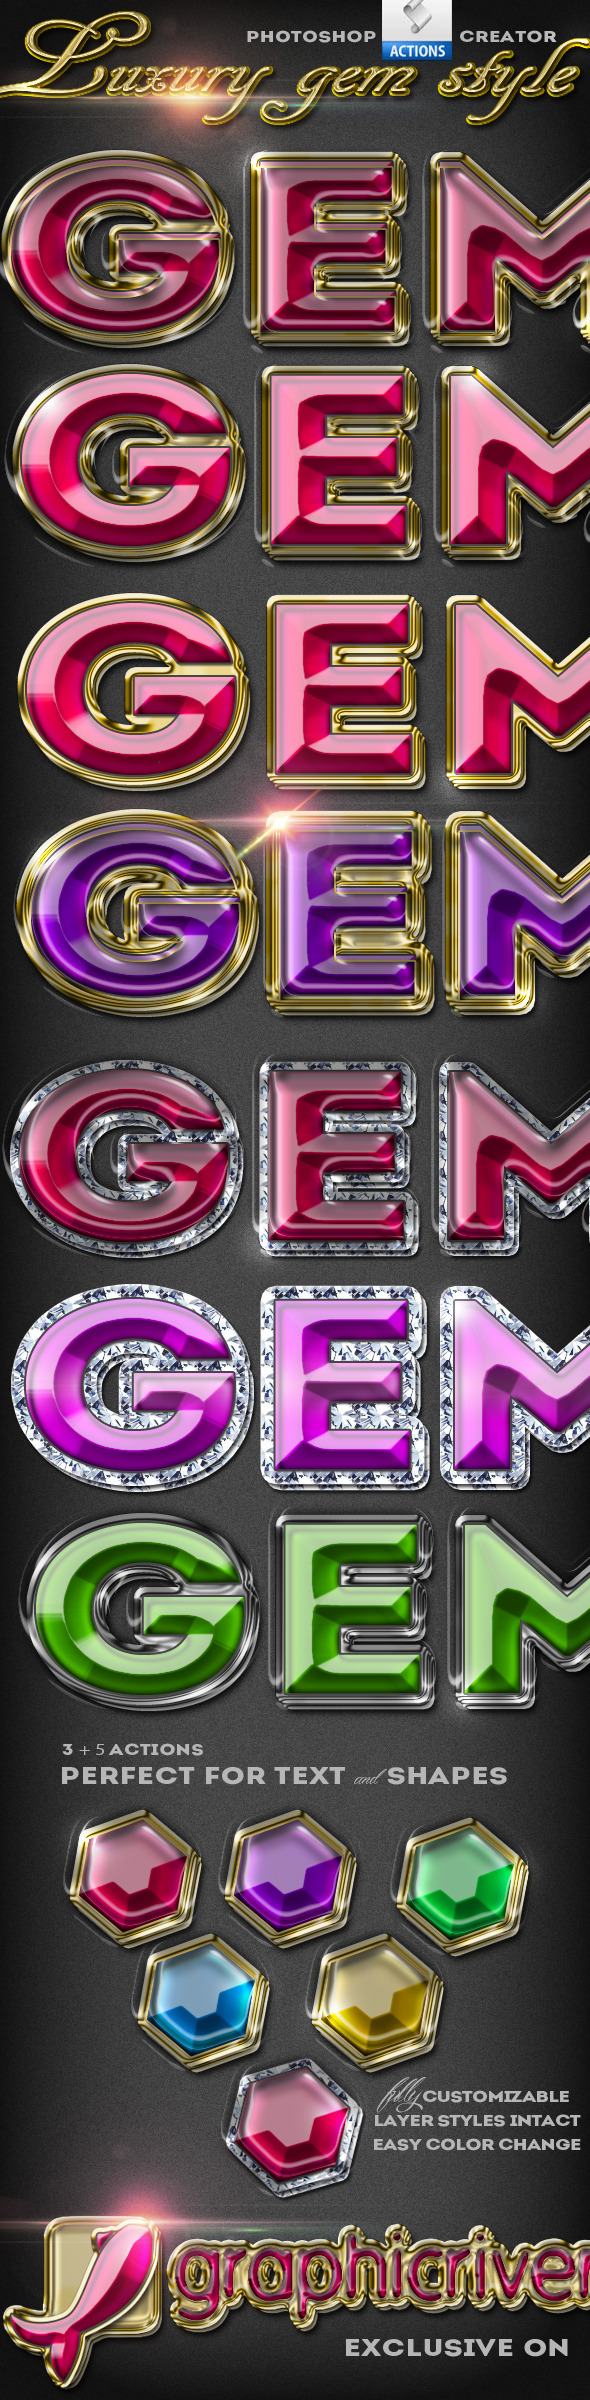 GraphicRiver Gem Style Jewelry Photoshop Creator 10454462